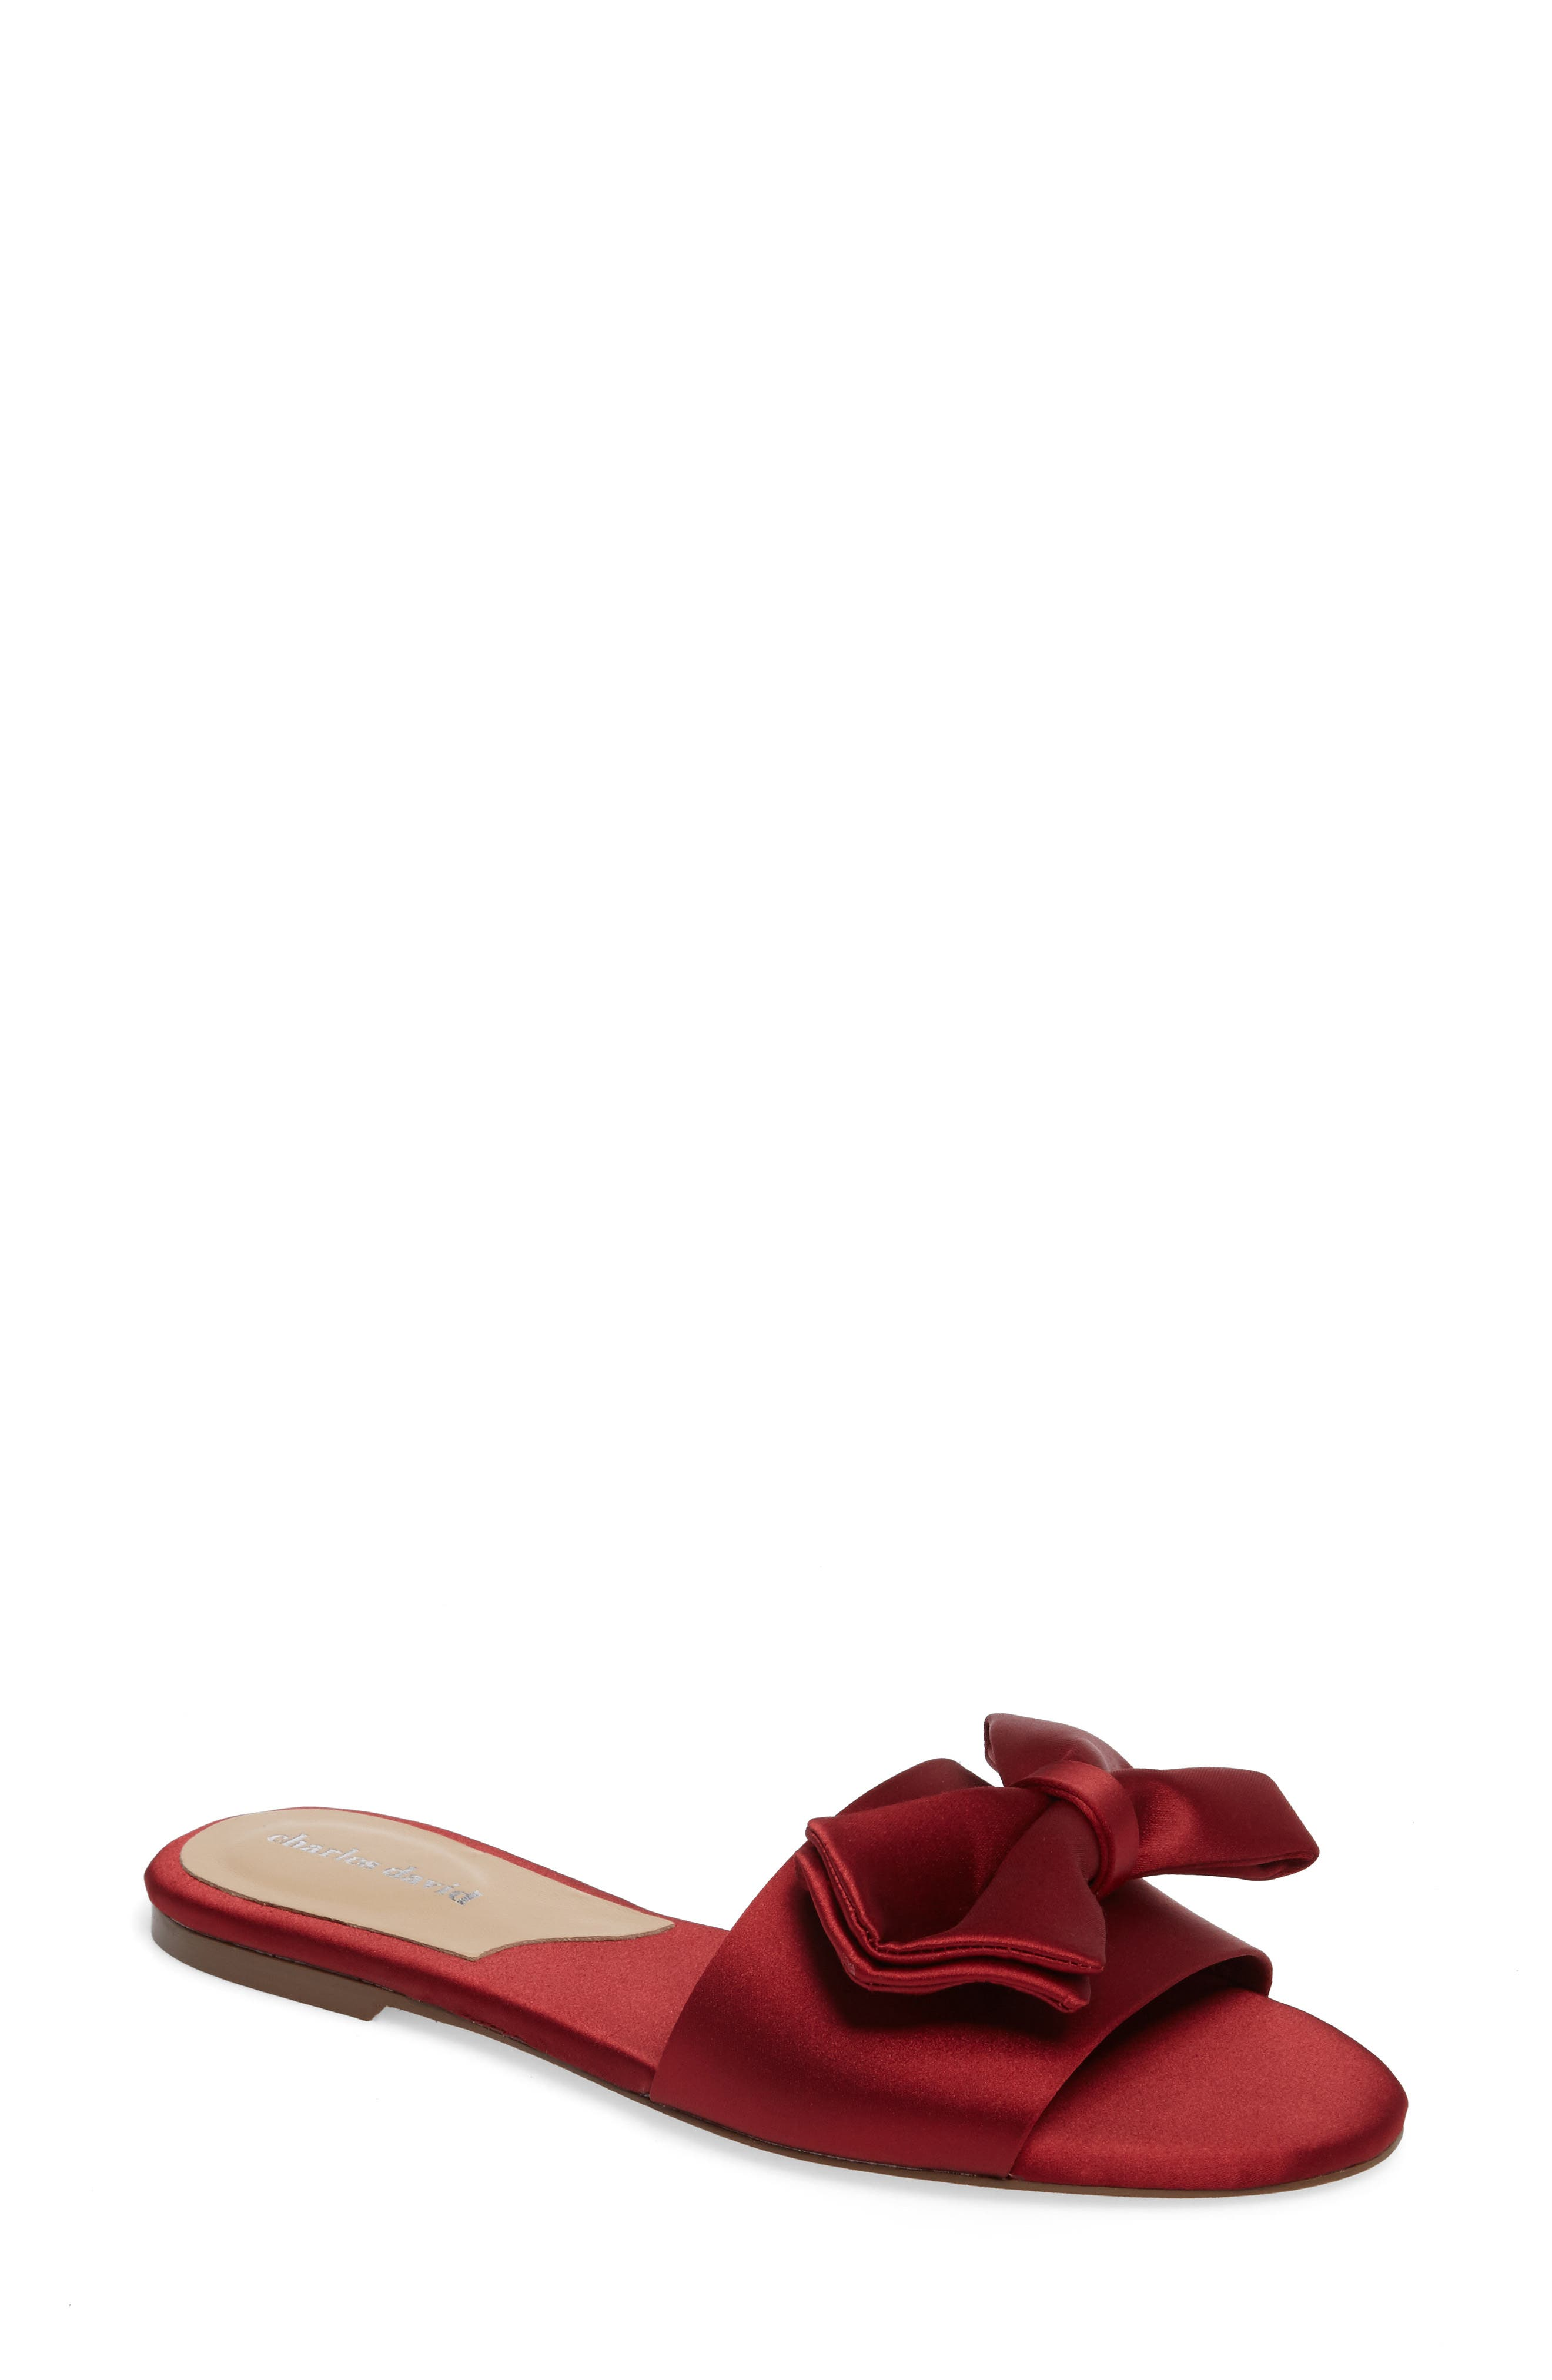 Bow Slide Sandal,                         Main,                         color, Burgundy Satin